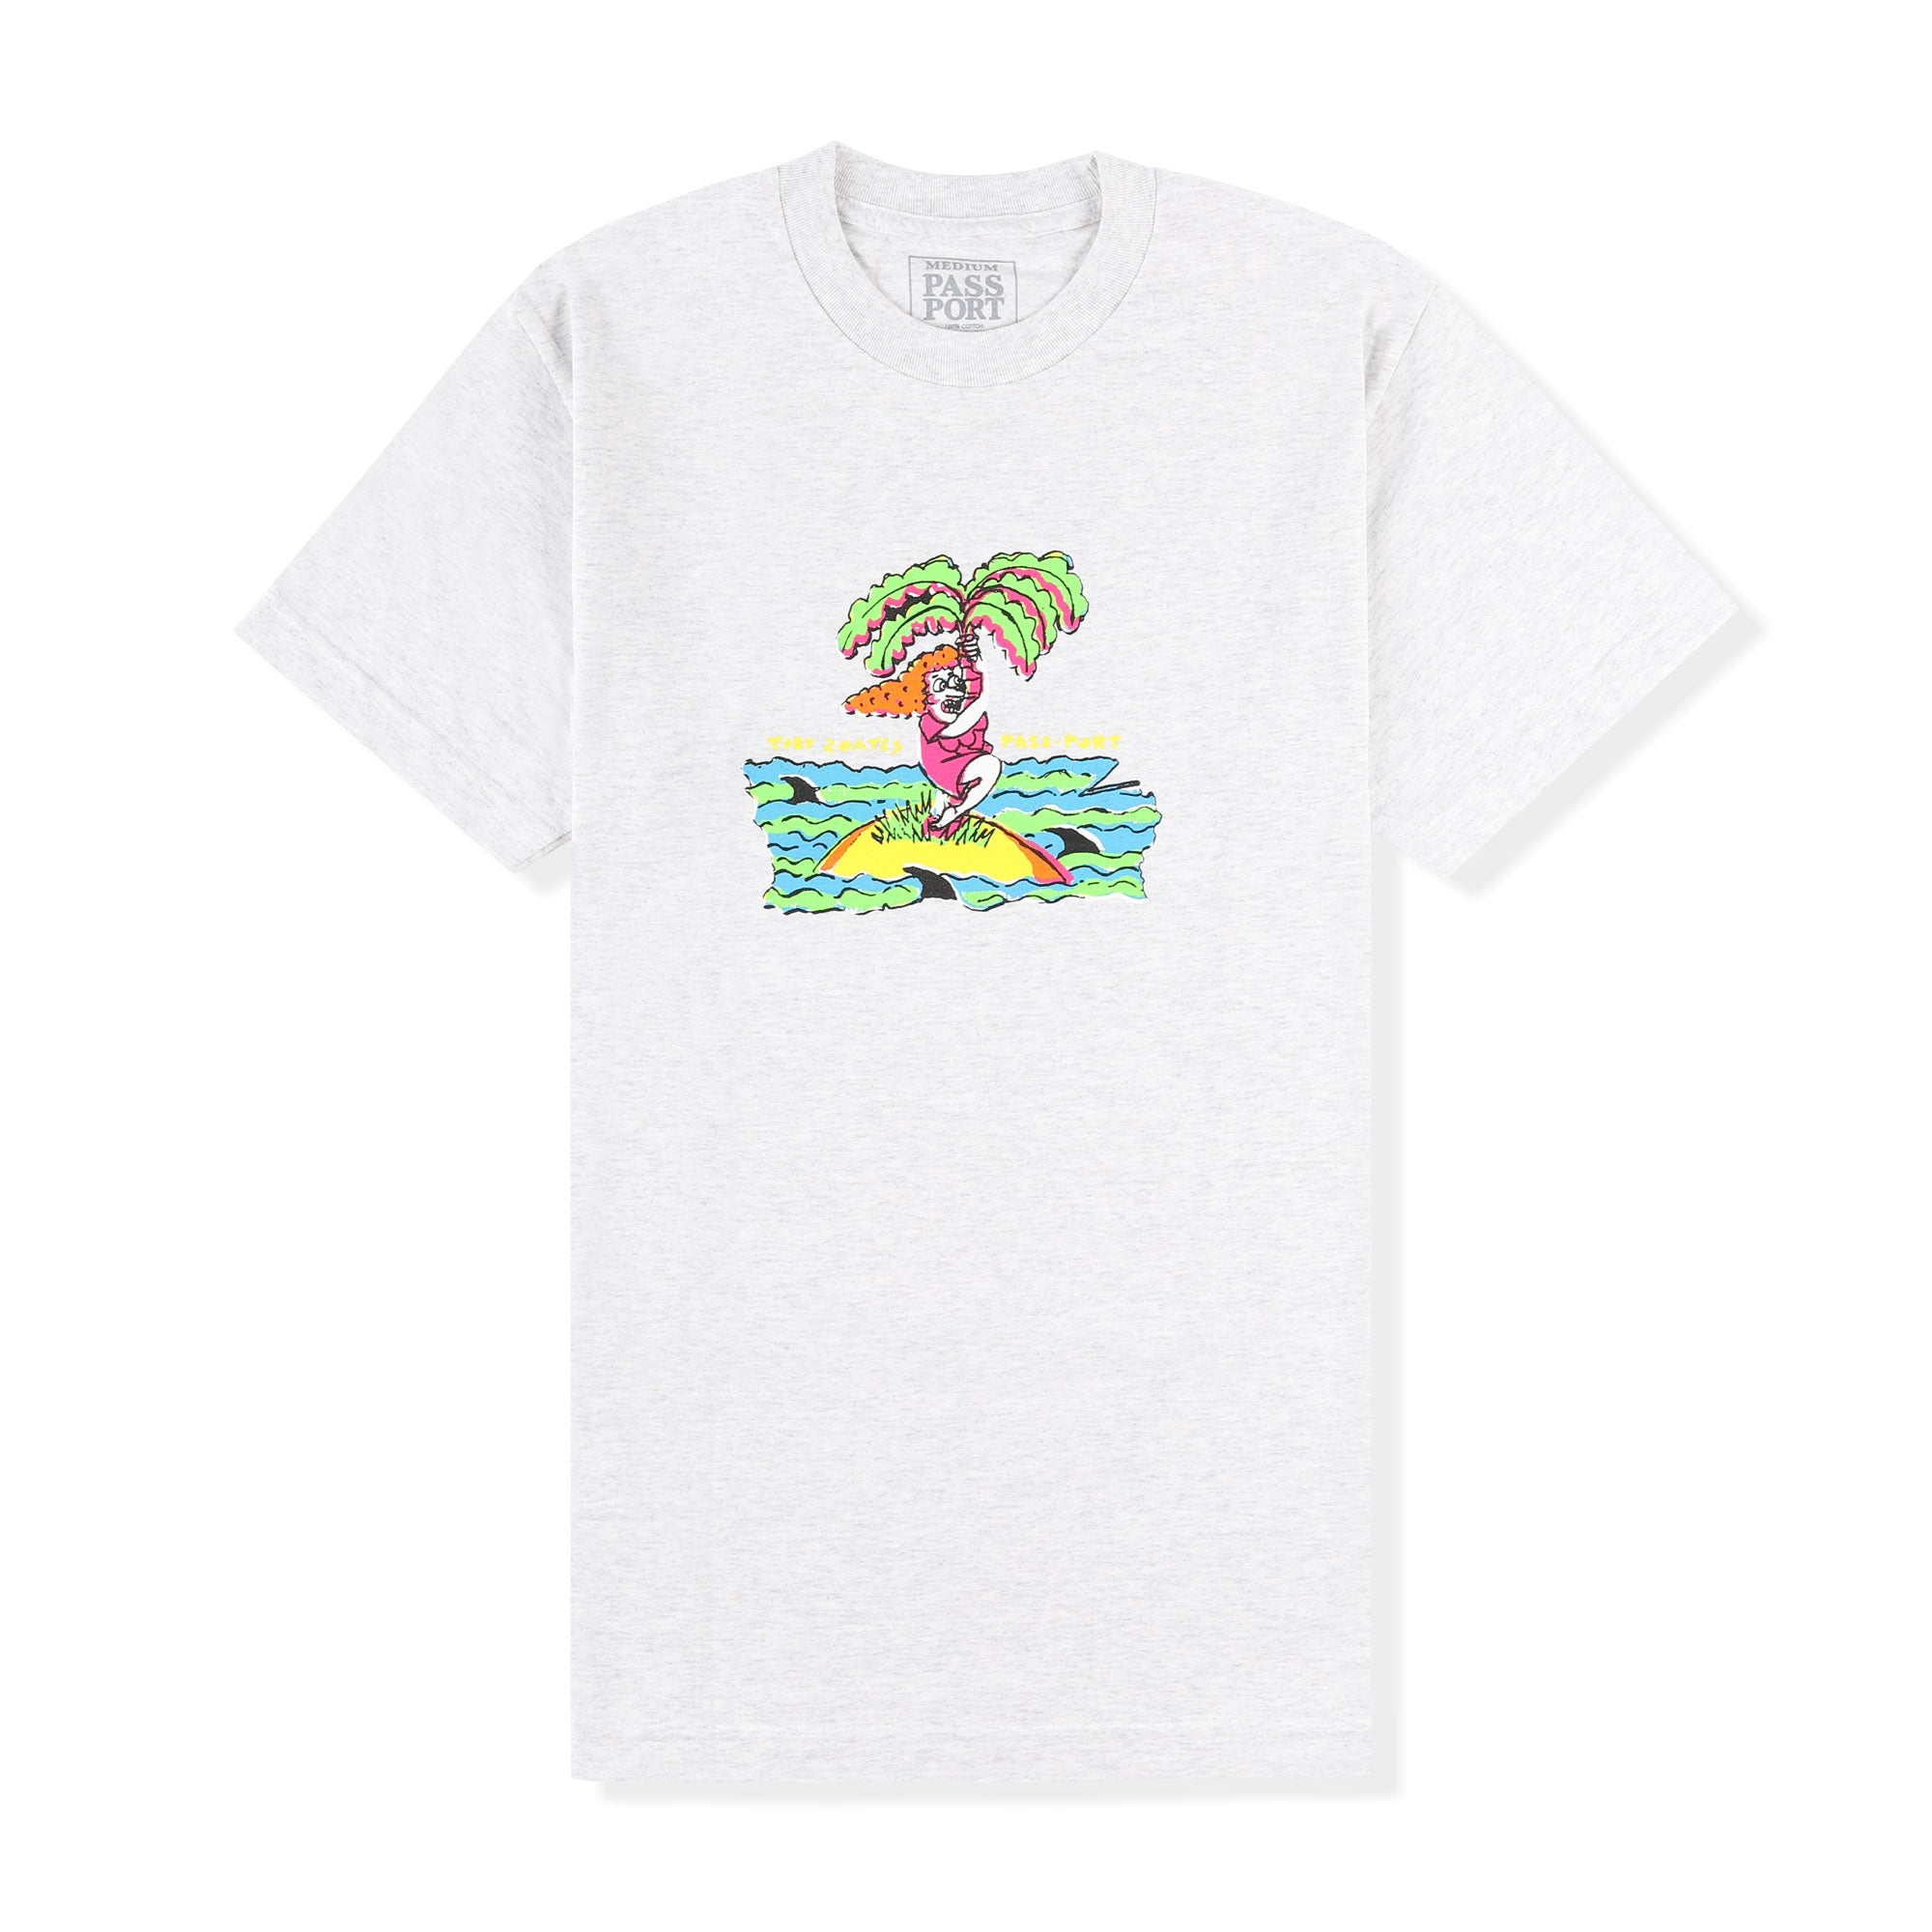 Passport Toby Zoates Darling Tee Product Photo #1